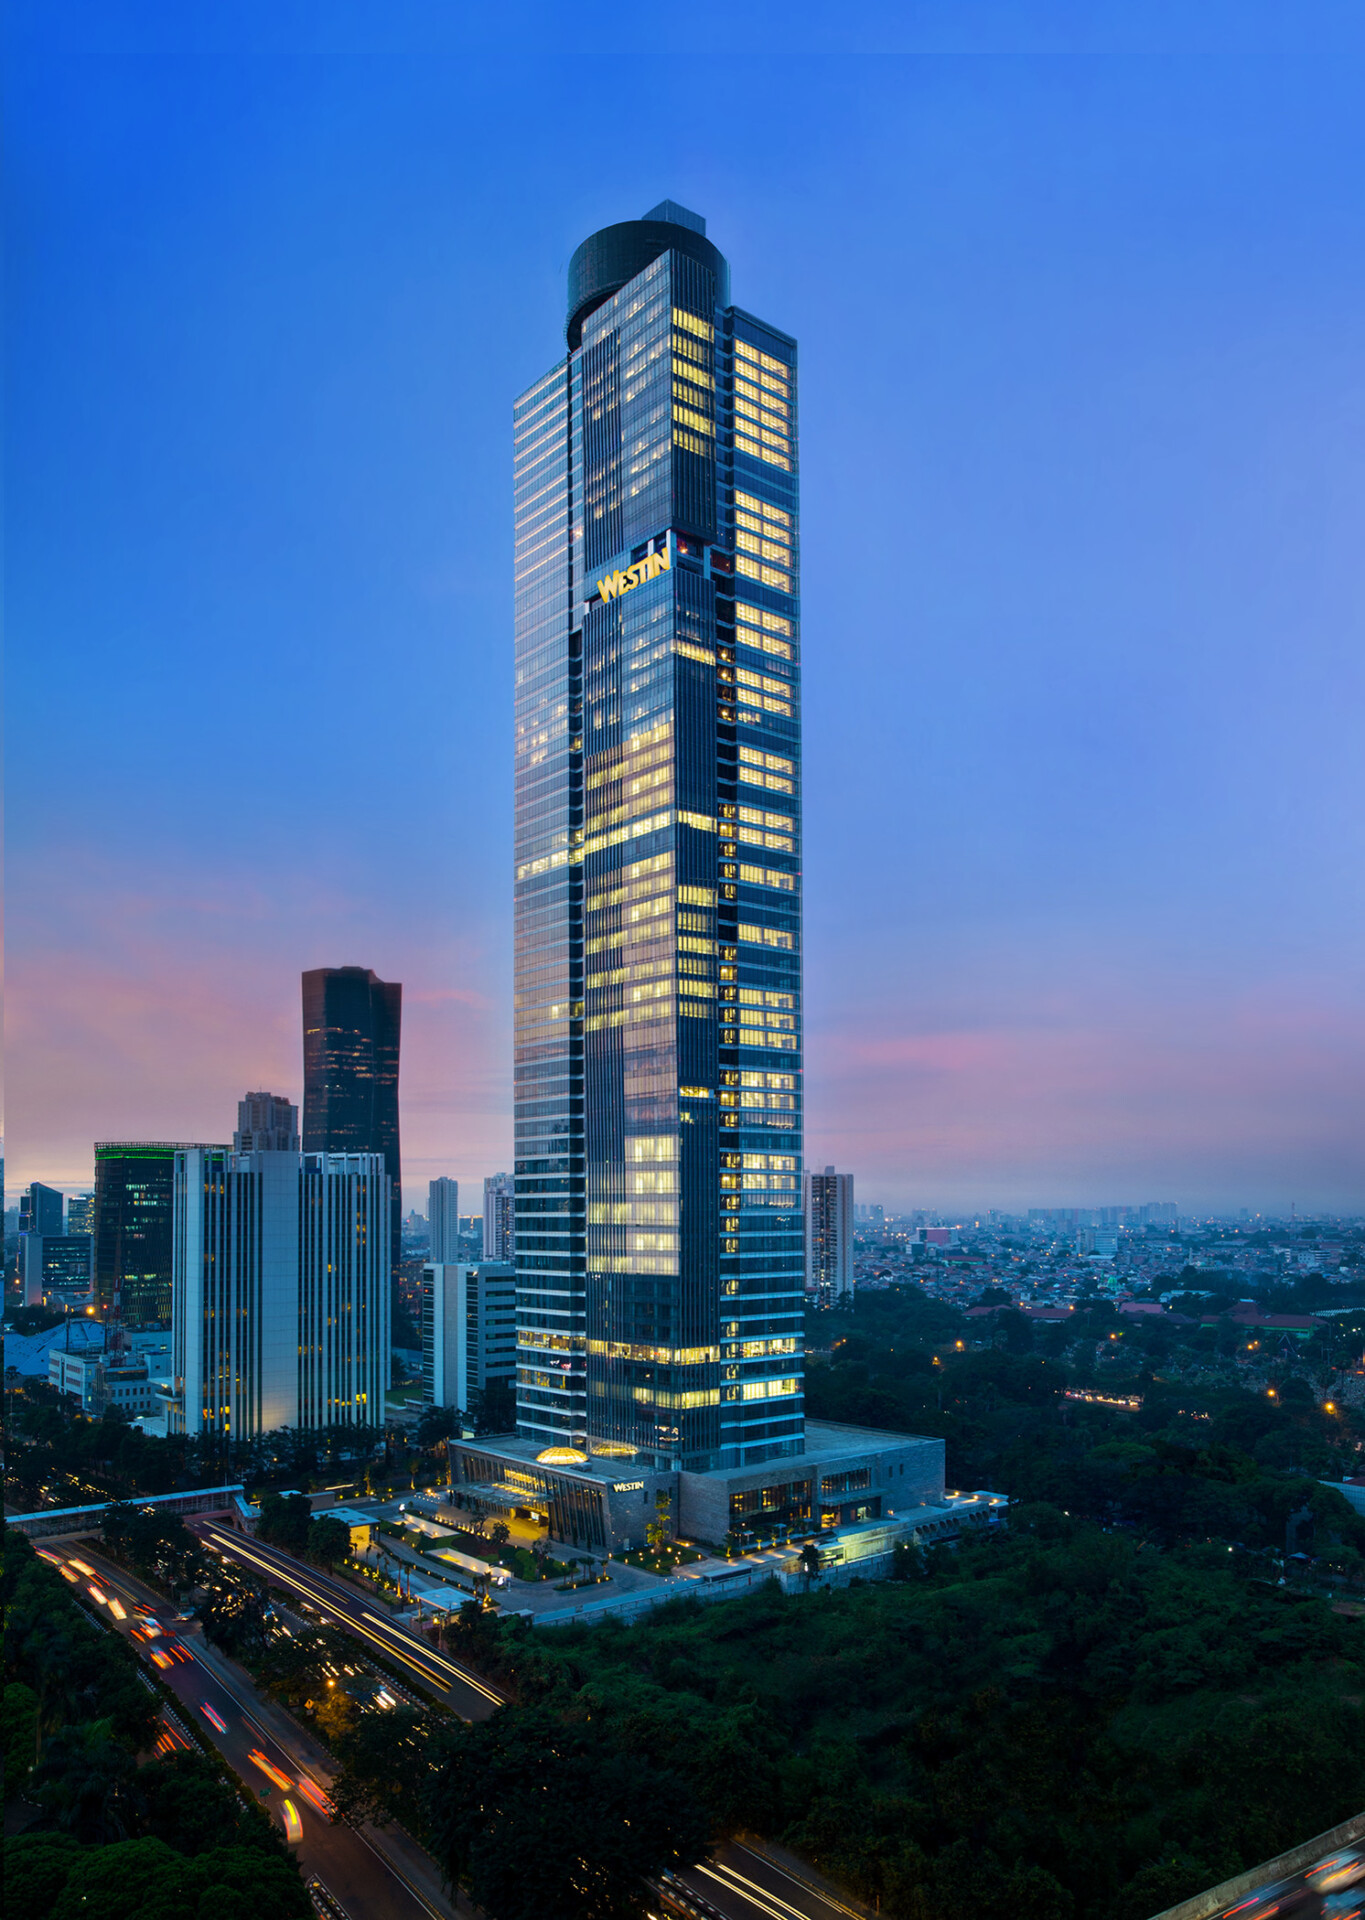 The Westin Jakarta Celebrates 4th Anniversary With Special Offers